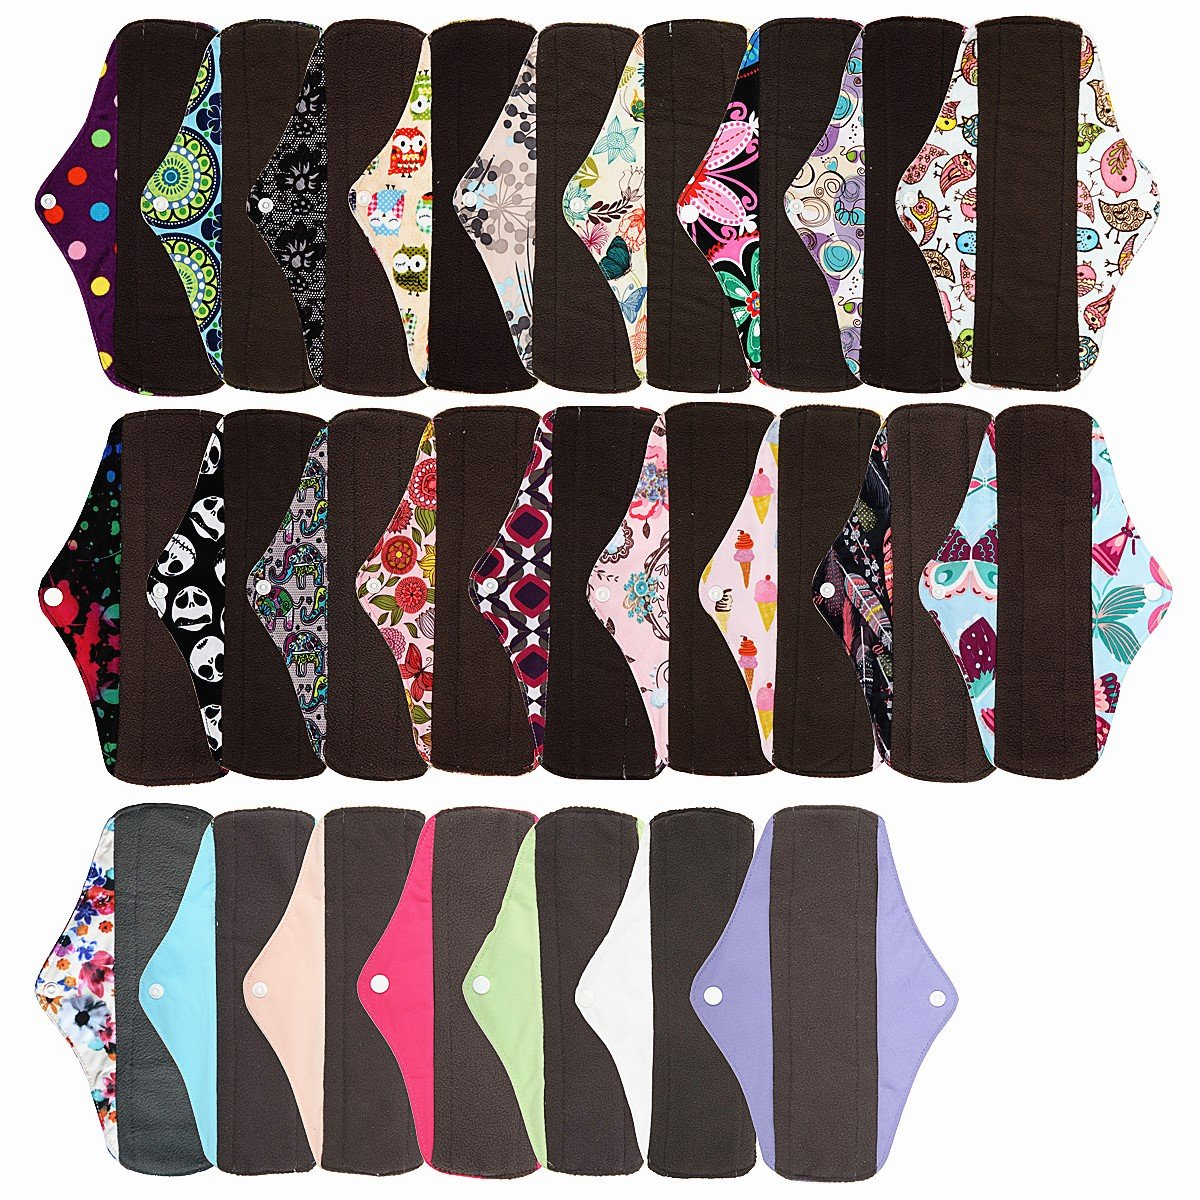 6 Pieces 10 Inch Regular Charcoal Bamboo Mama Cloth/ Menstrual Pads/ Reusable Sanitary Pads - You Choose 6 From 17 Designs and Send the Message to Me Hibaby